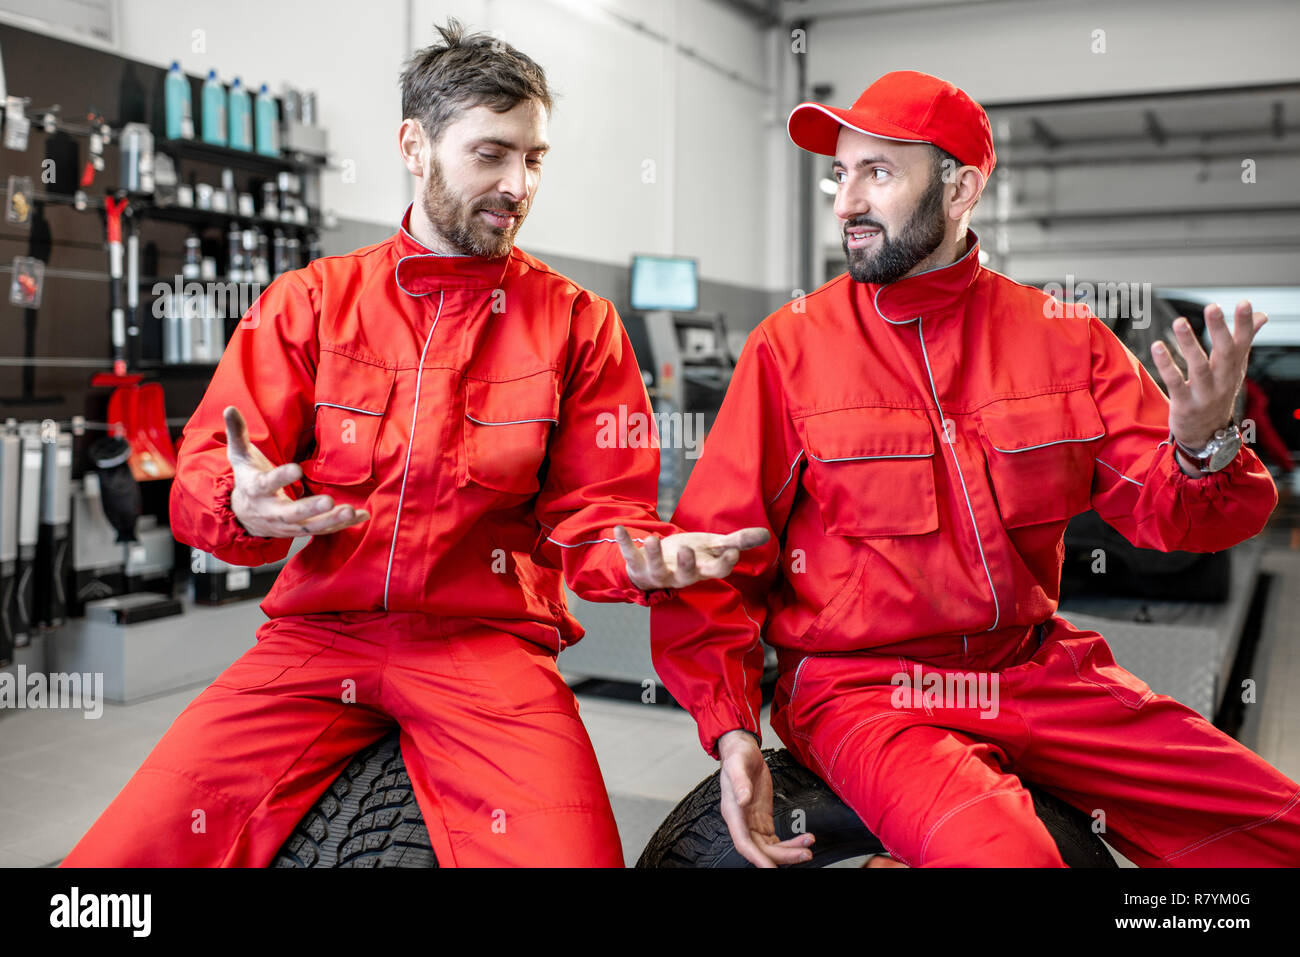 Car Service Workers In Red Uniform Having A Break Sitting Together